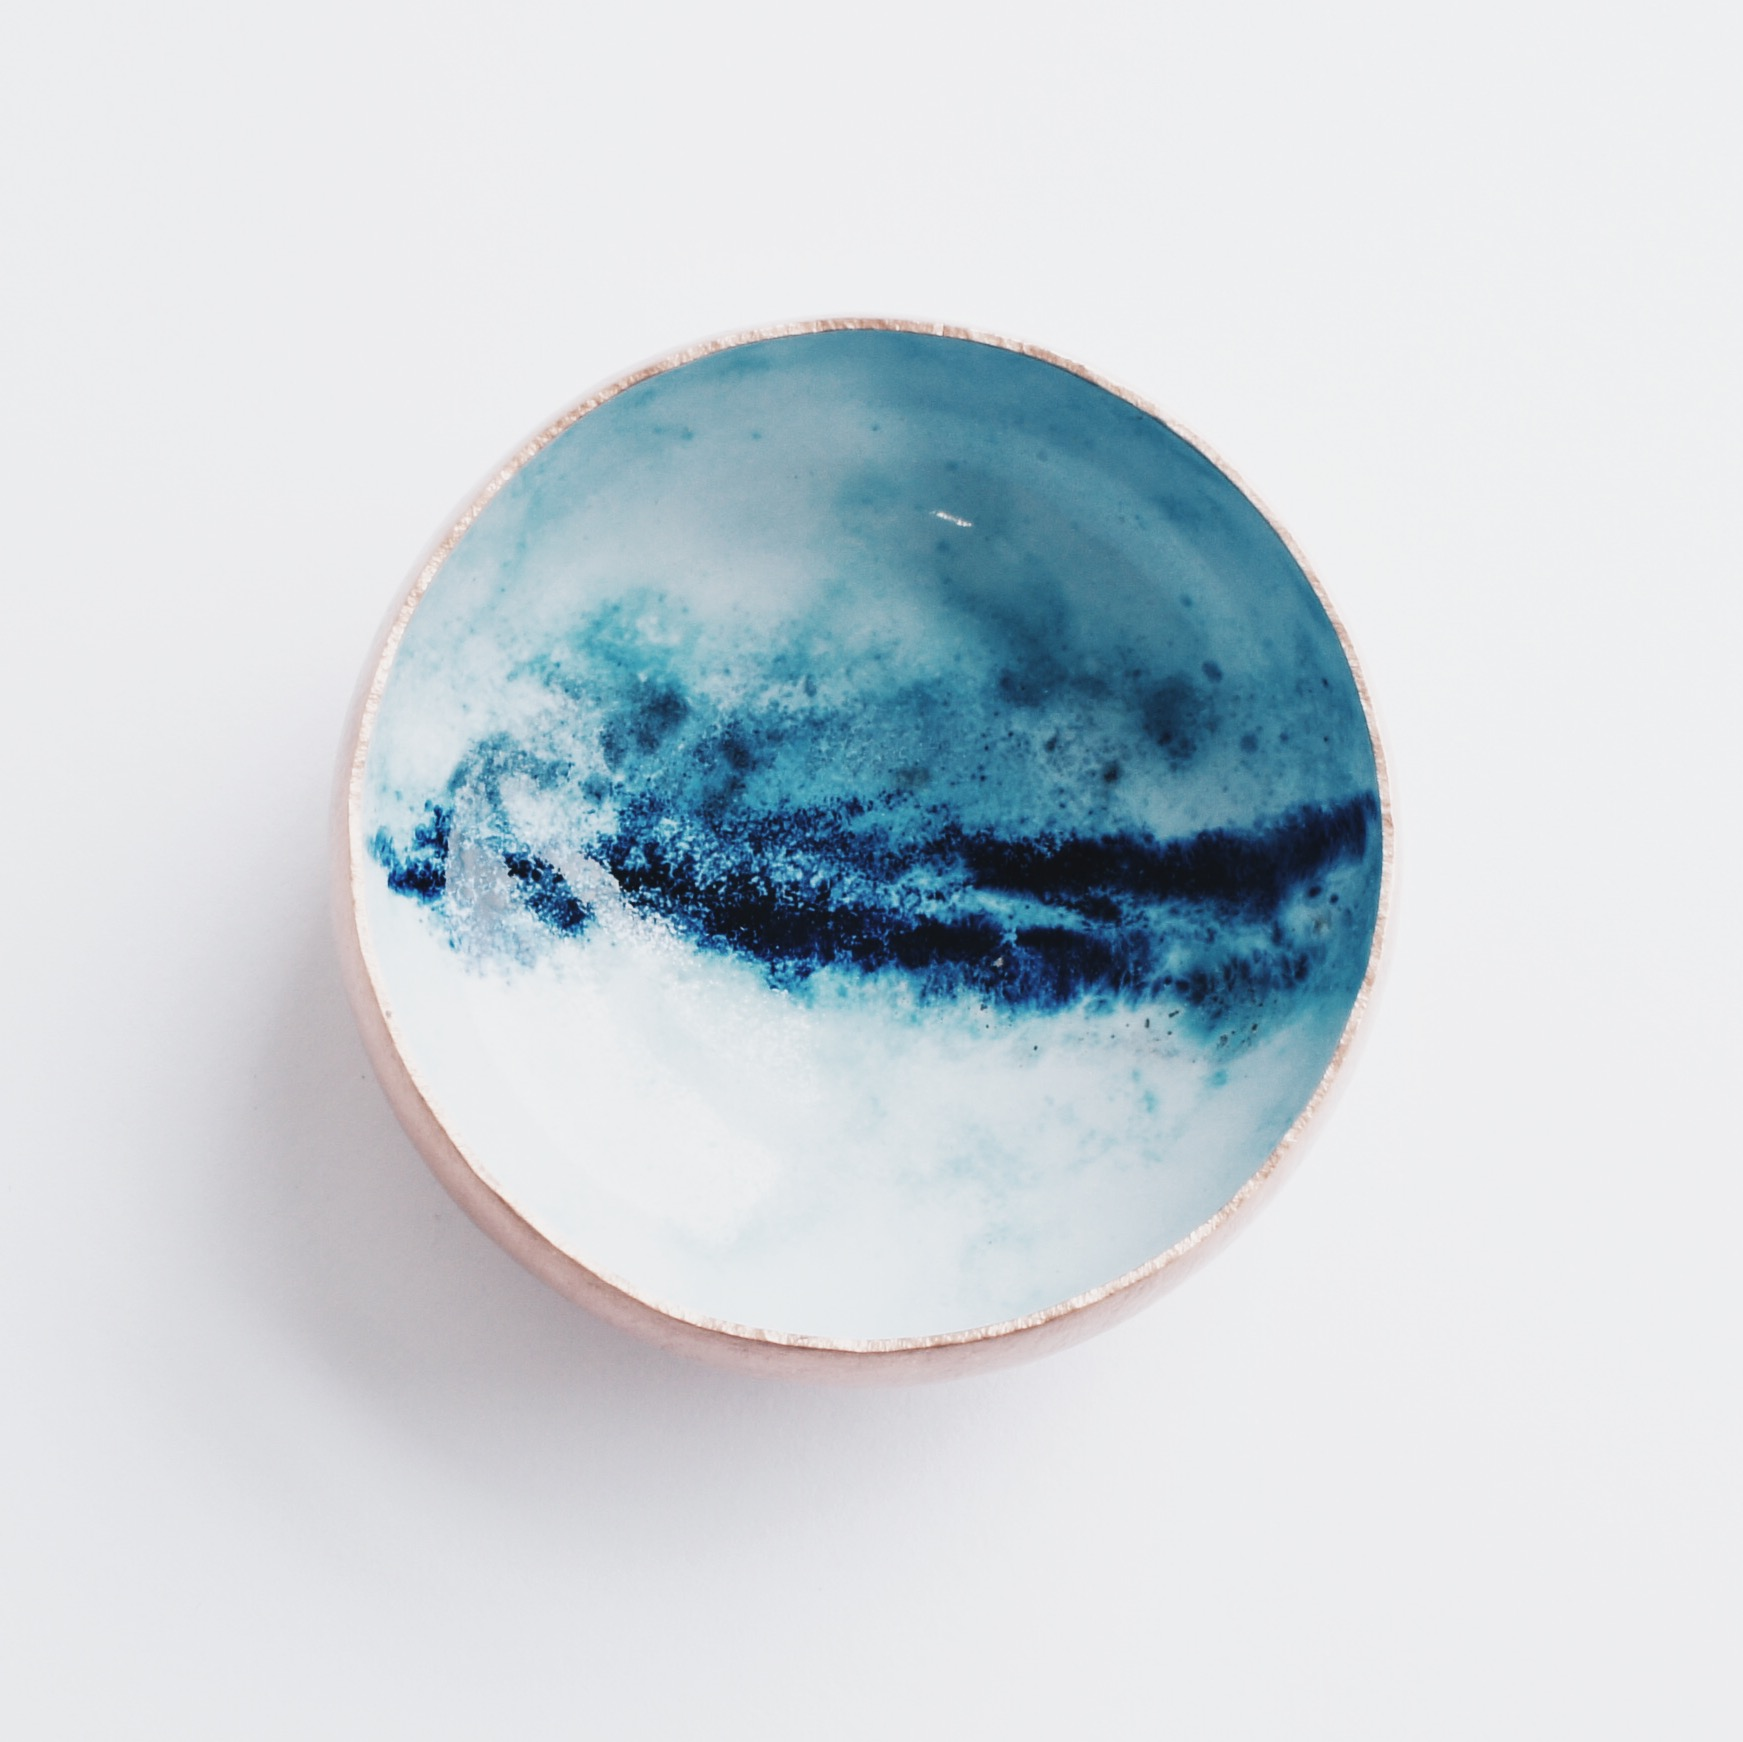 Copper and Enamel Bowl in Squall